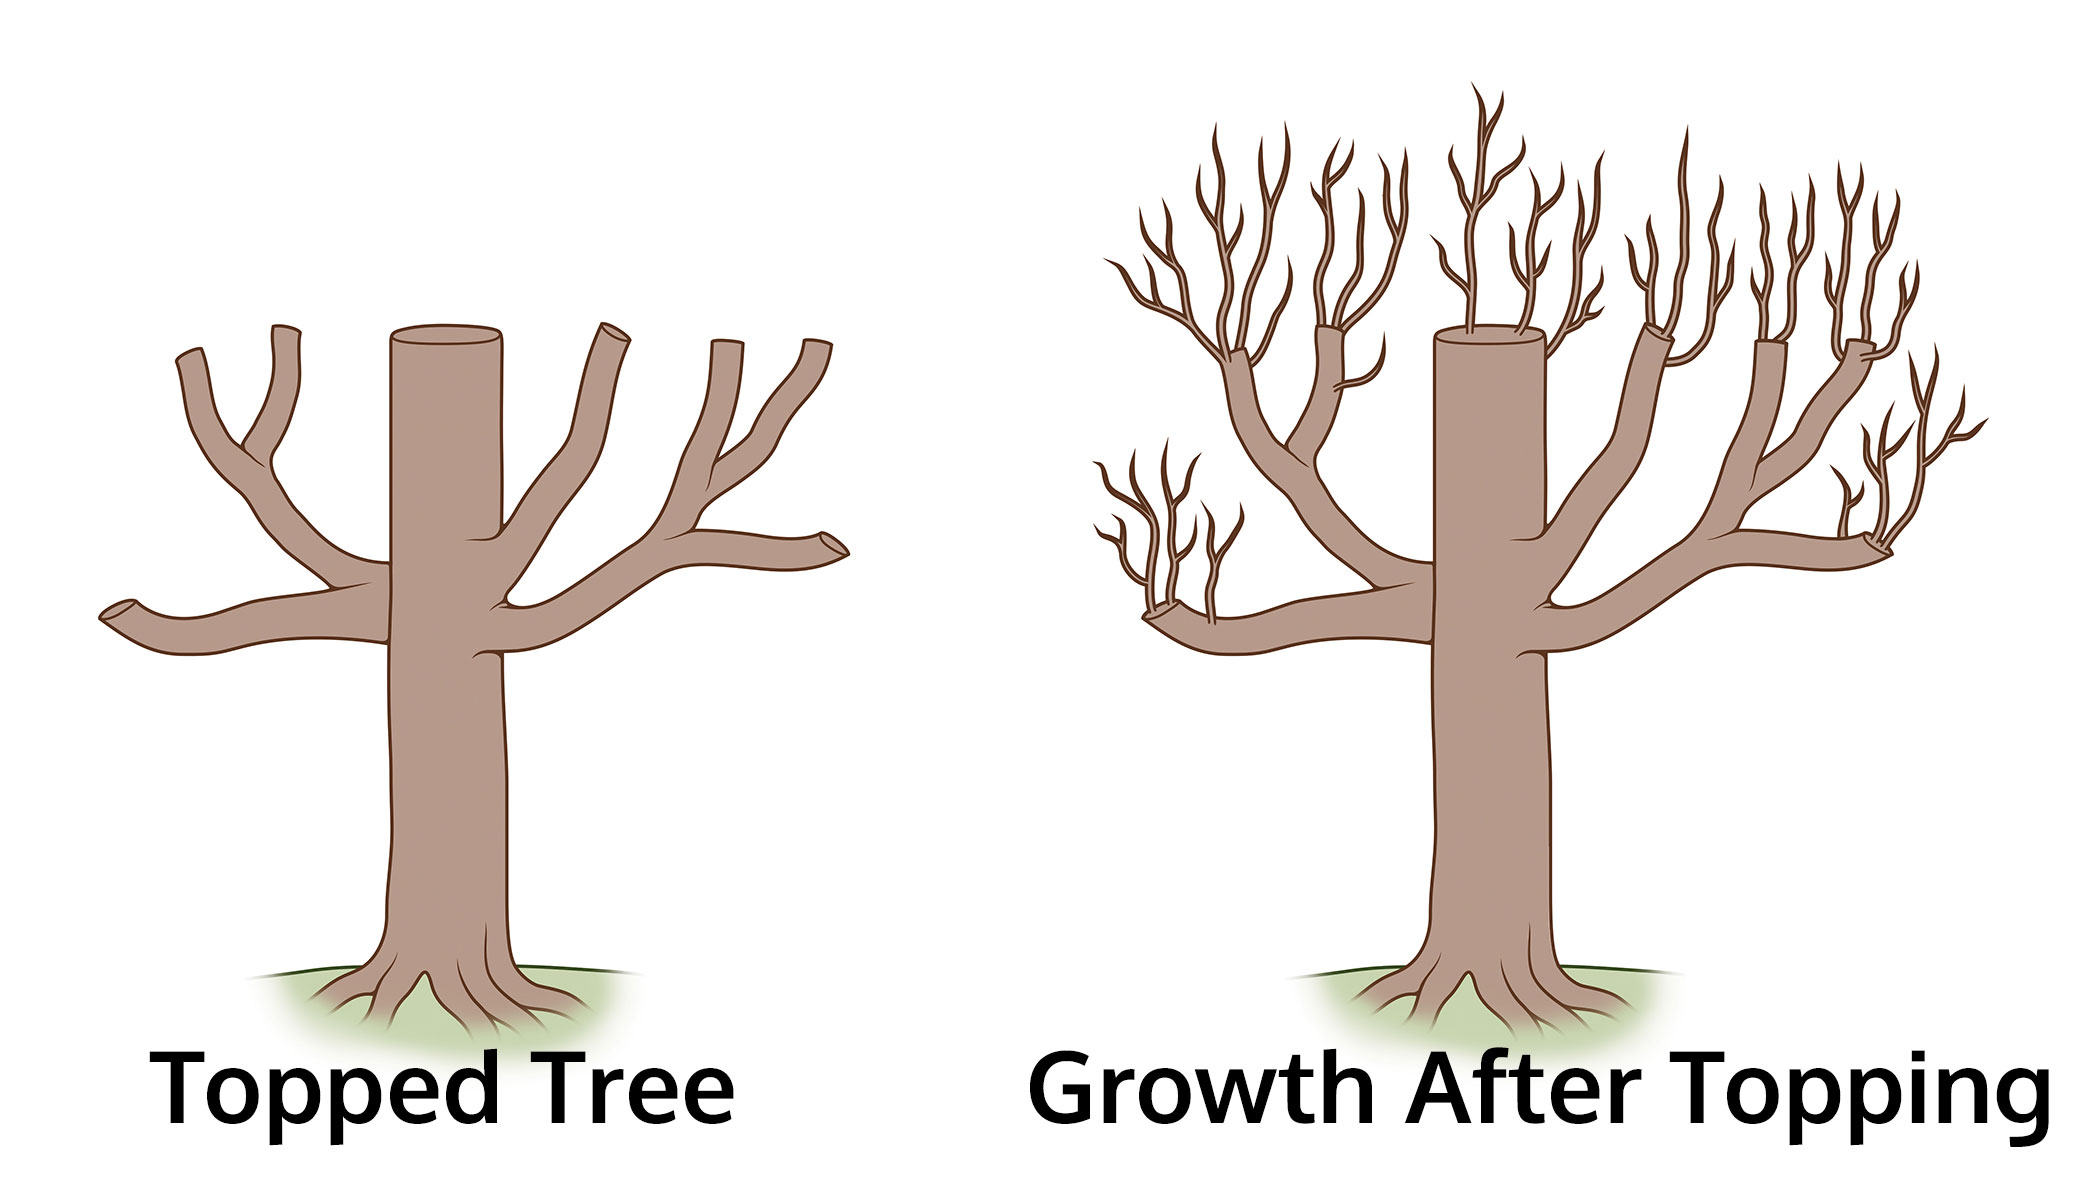 illustration-of-growth-after-pruning-trees-topping